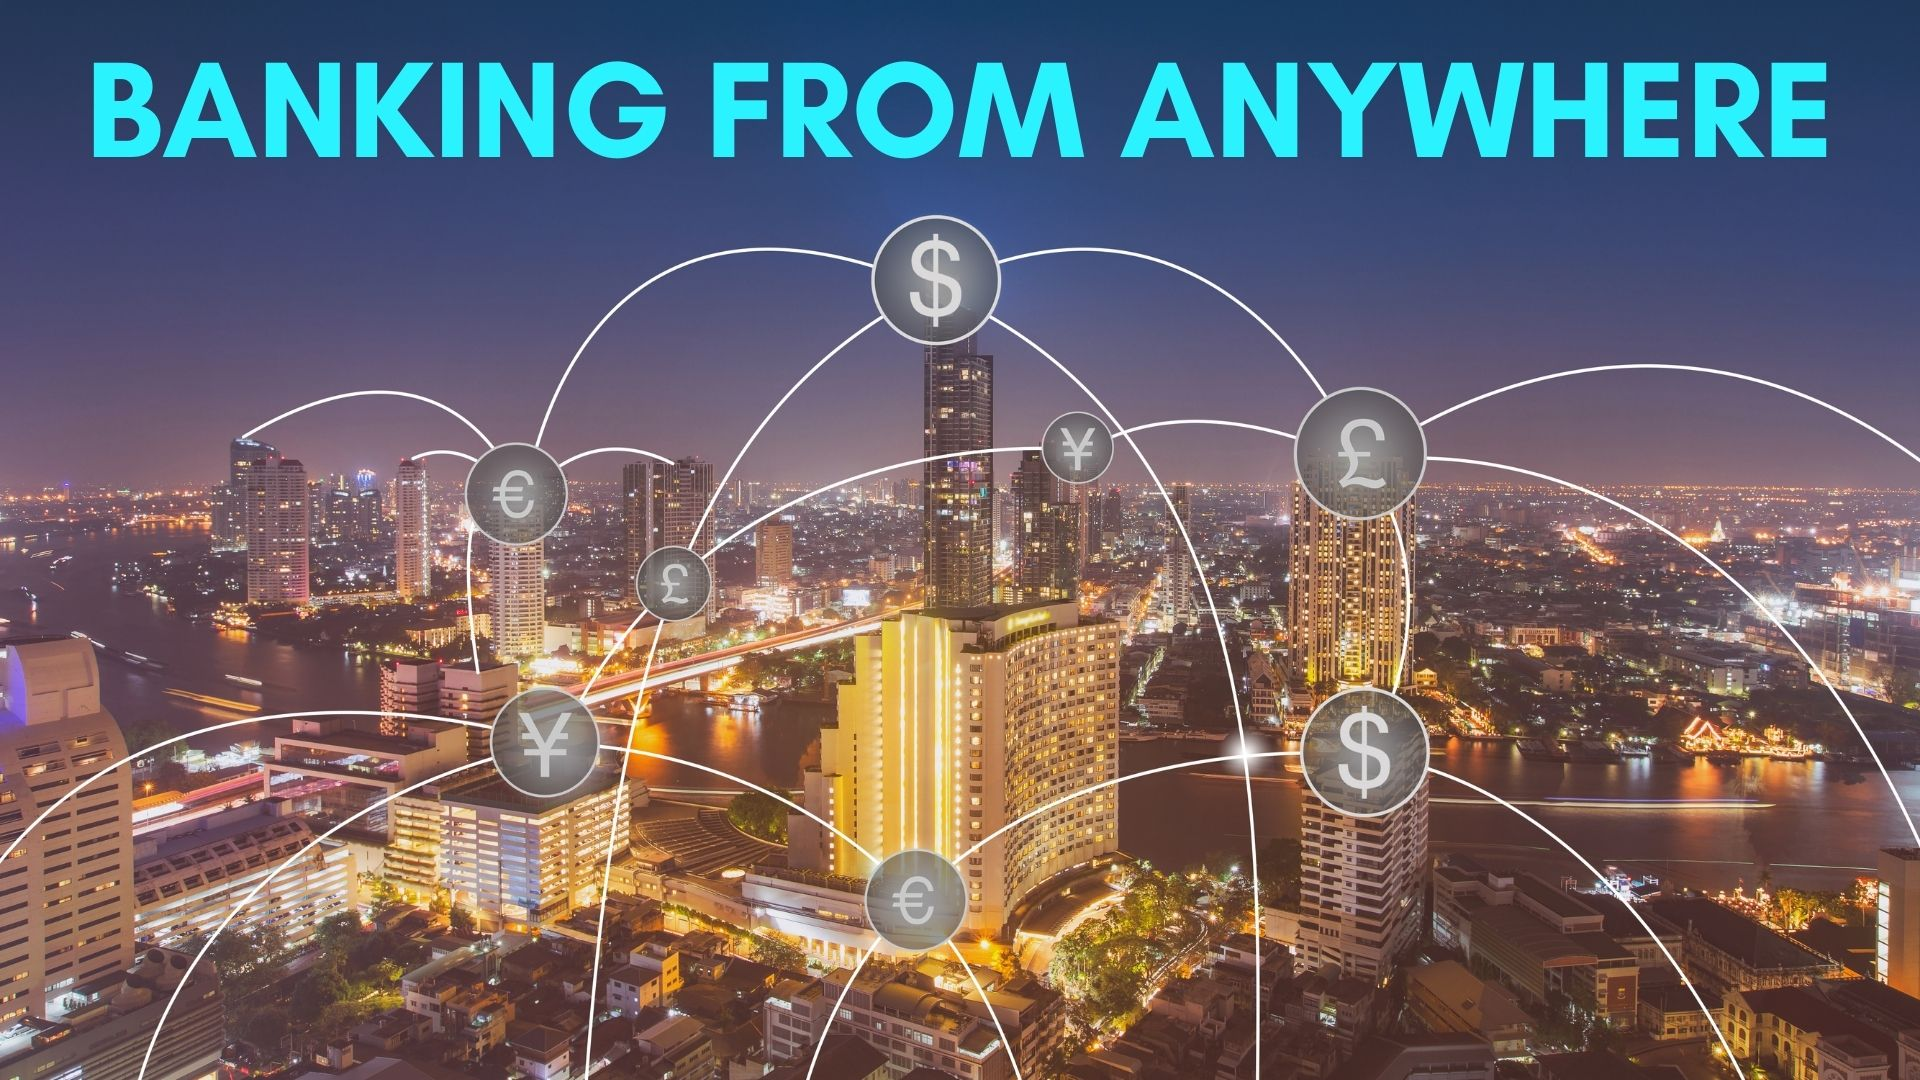 Banking from anywhere: embracing technology to exceed customer expectations